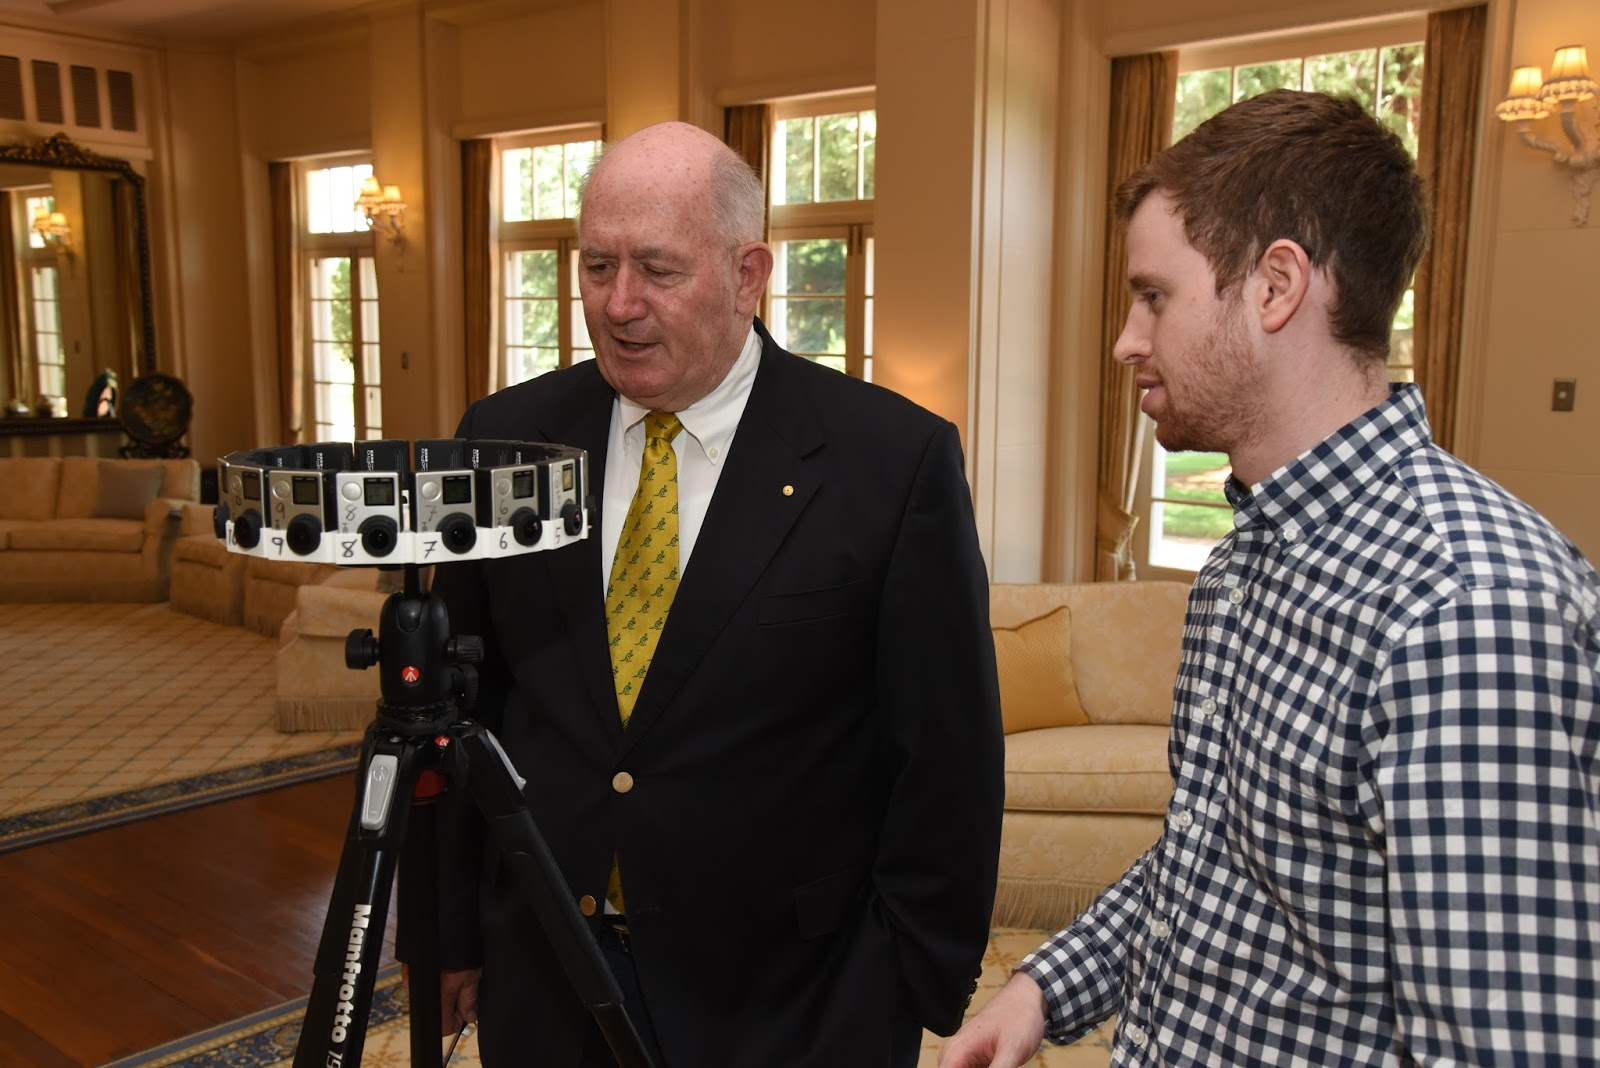 While at Google, David met with Australia's Governor General in Canberra to discuss the role of VR in education ( link ).